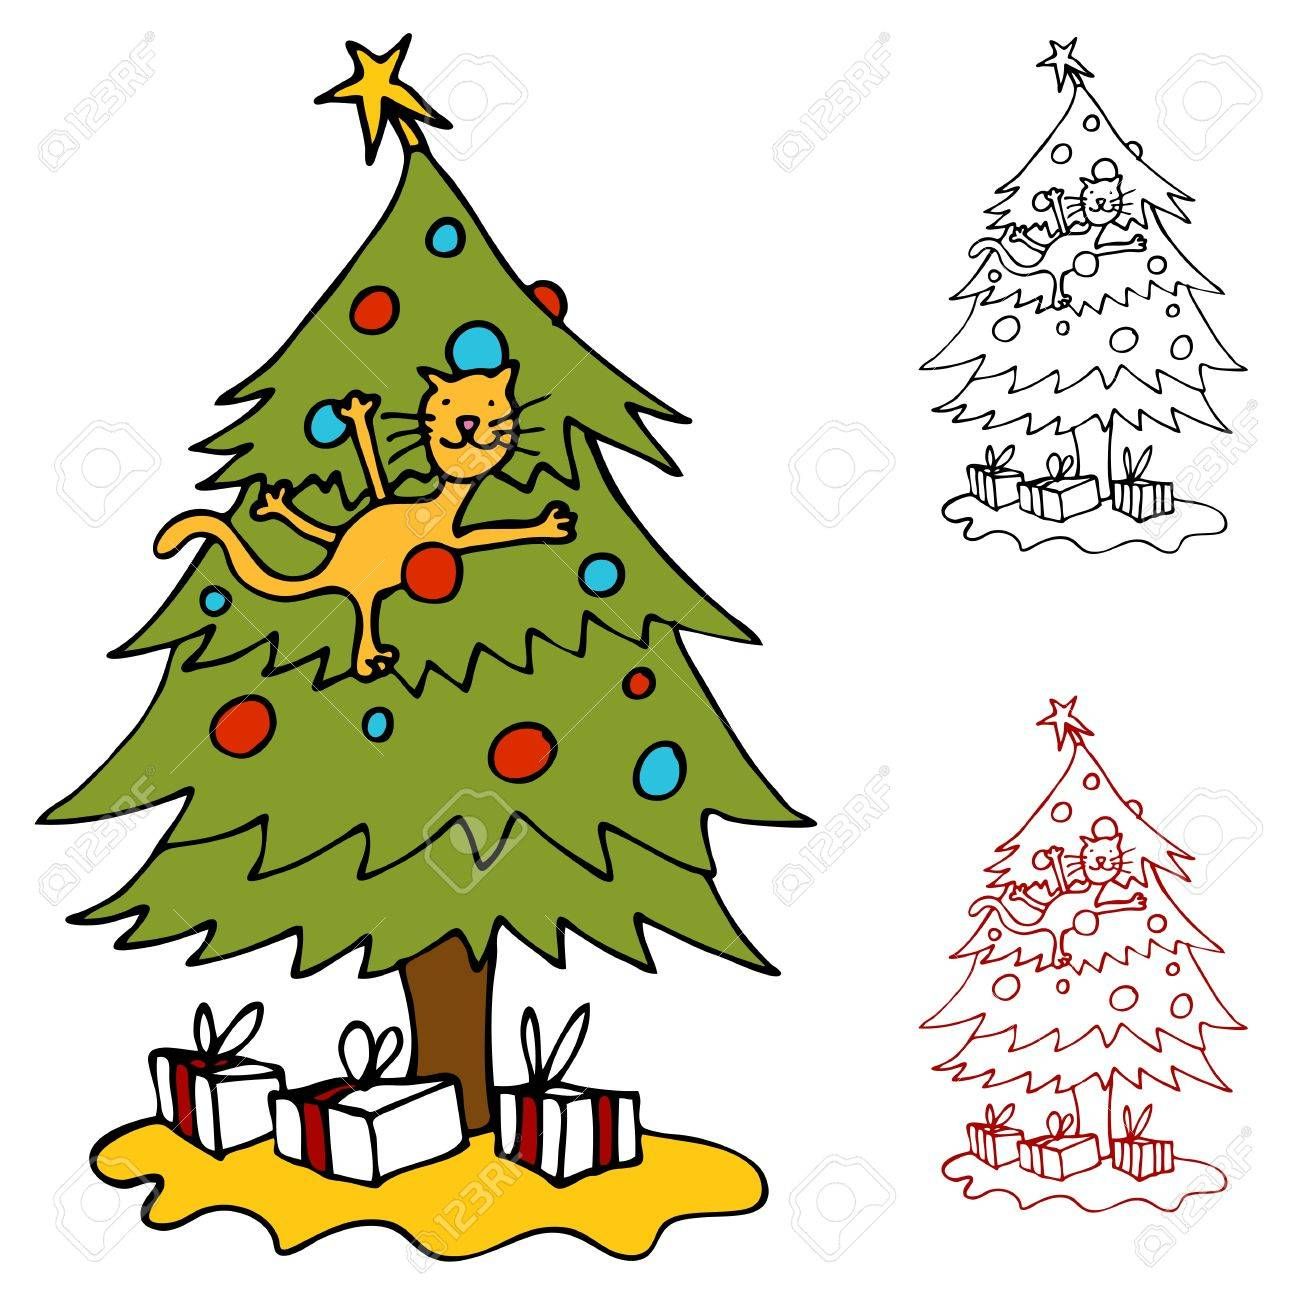 an image of a cat climbing a christmas tree royalty free cliparts